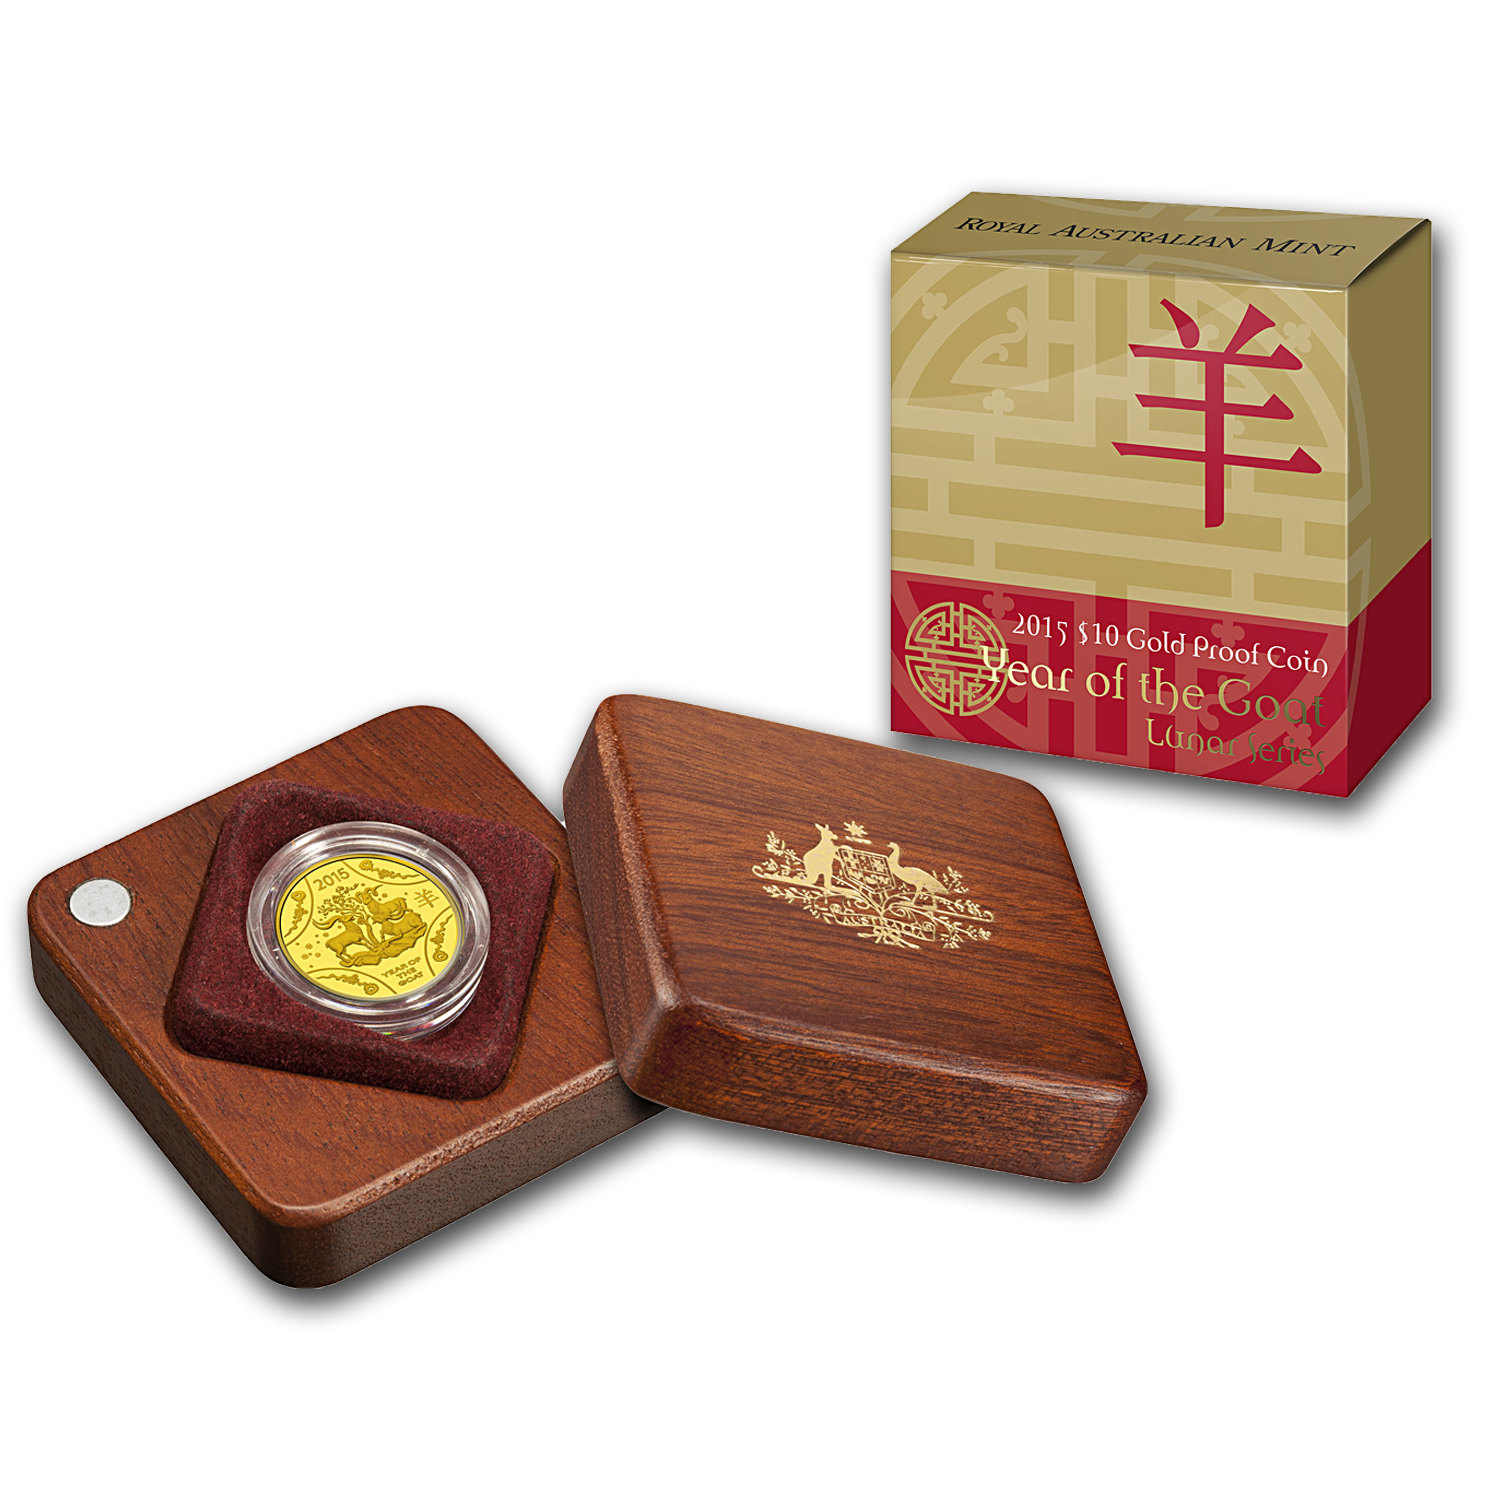 Royal Australian Mint 2015 1/10 oz Gold Proof Year of the Goat